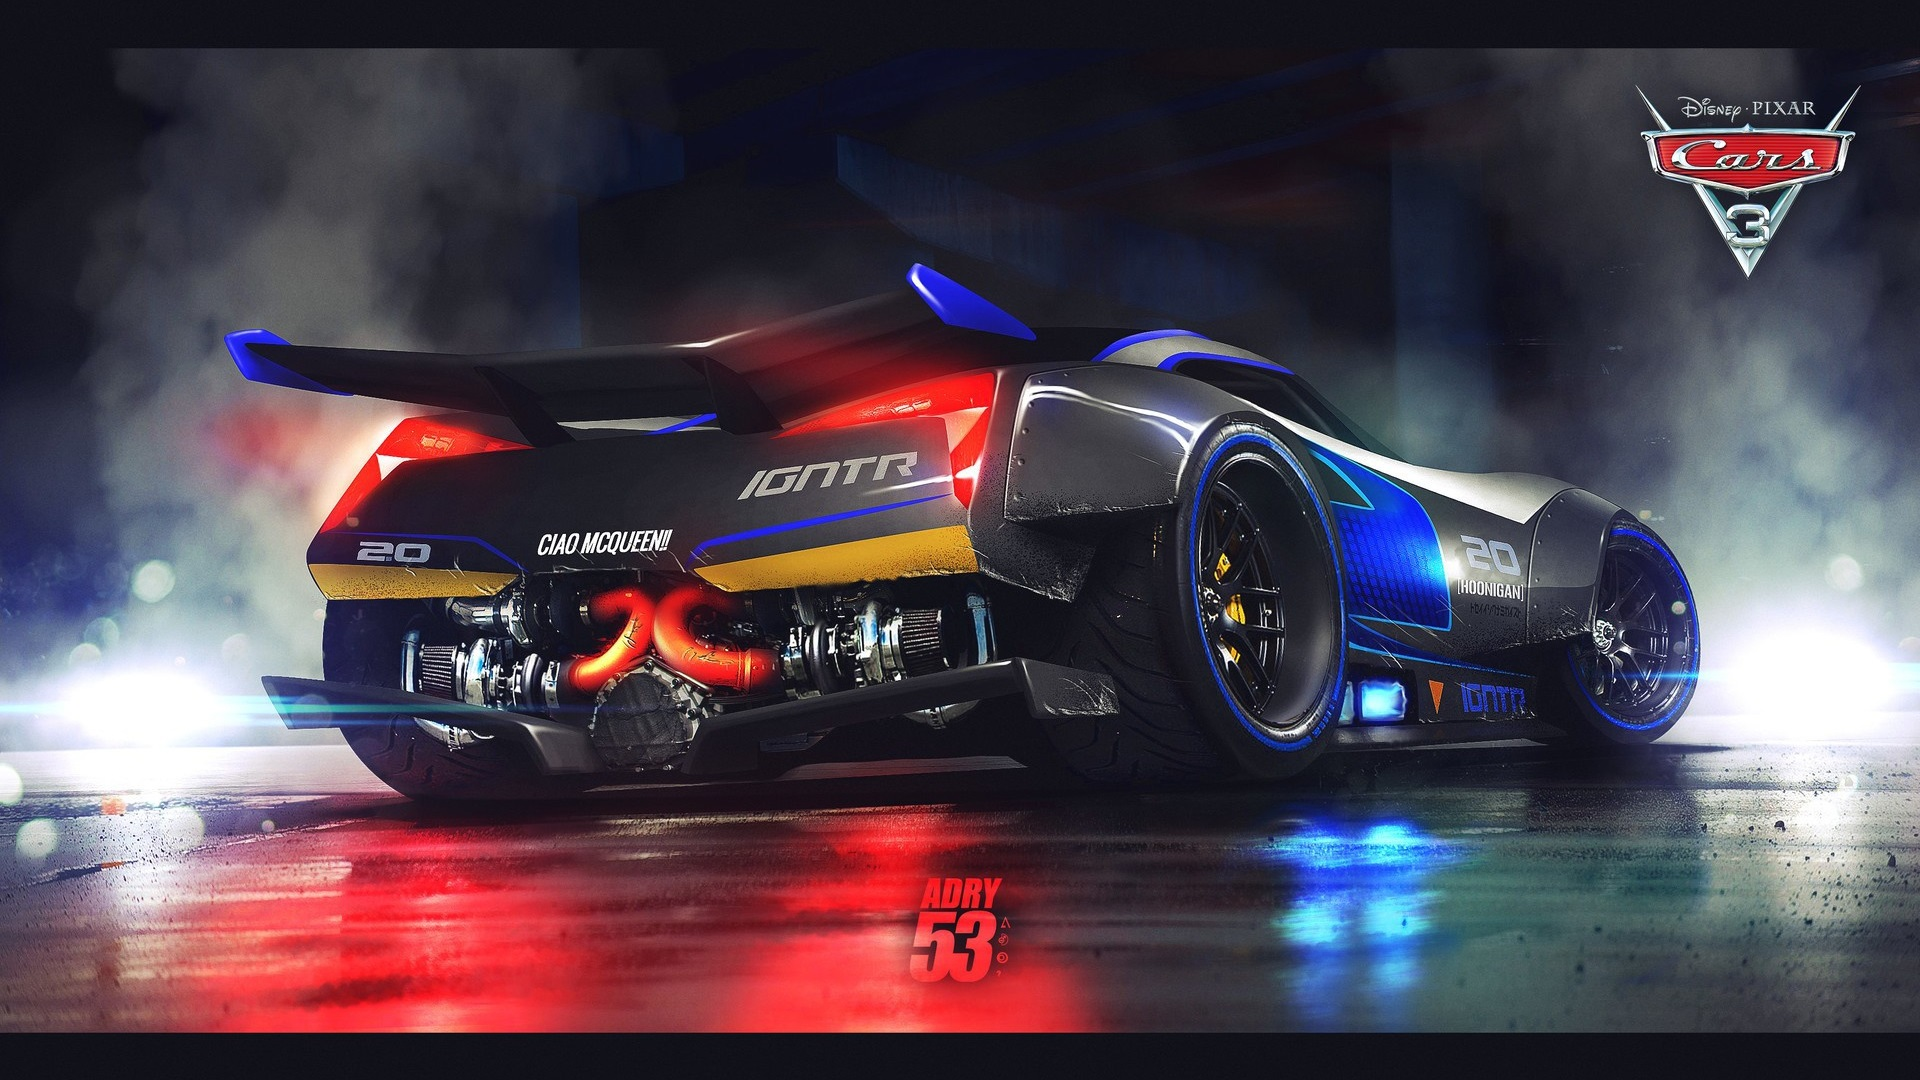 wallpaper cars 3 disney pixar movie supercar rear view